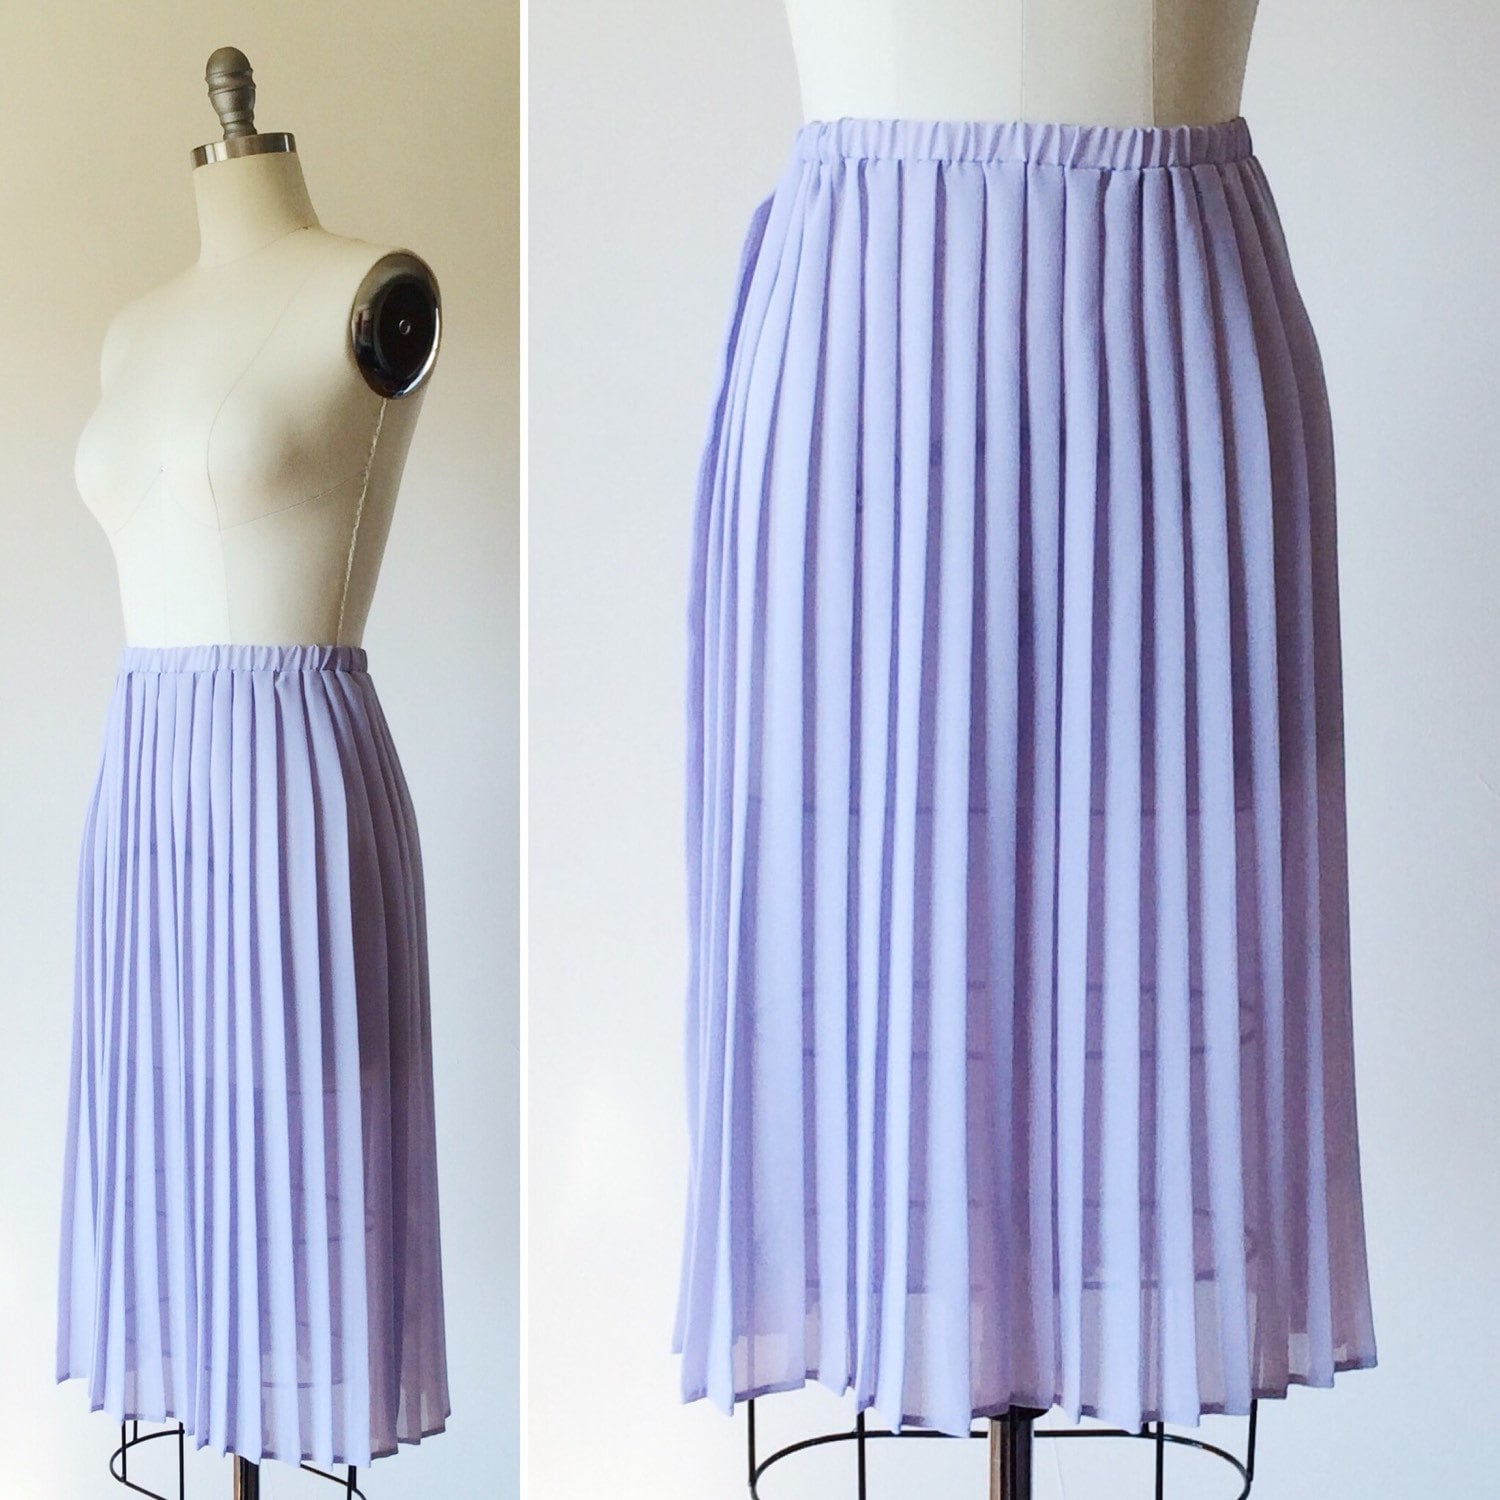 1960s lavender pleated skirt vintage lilac midi by